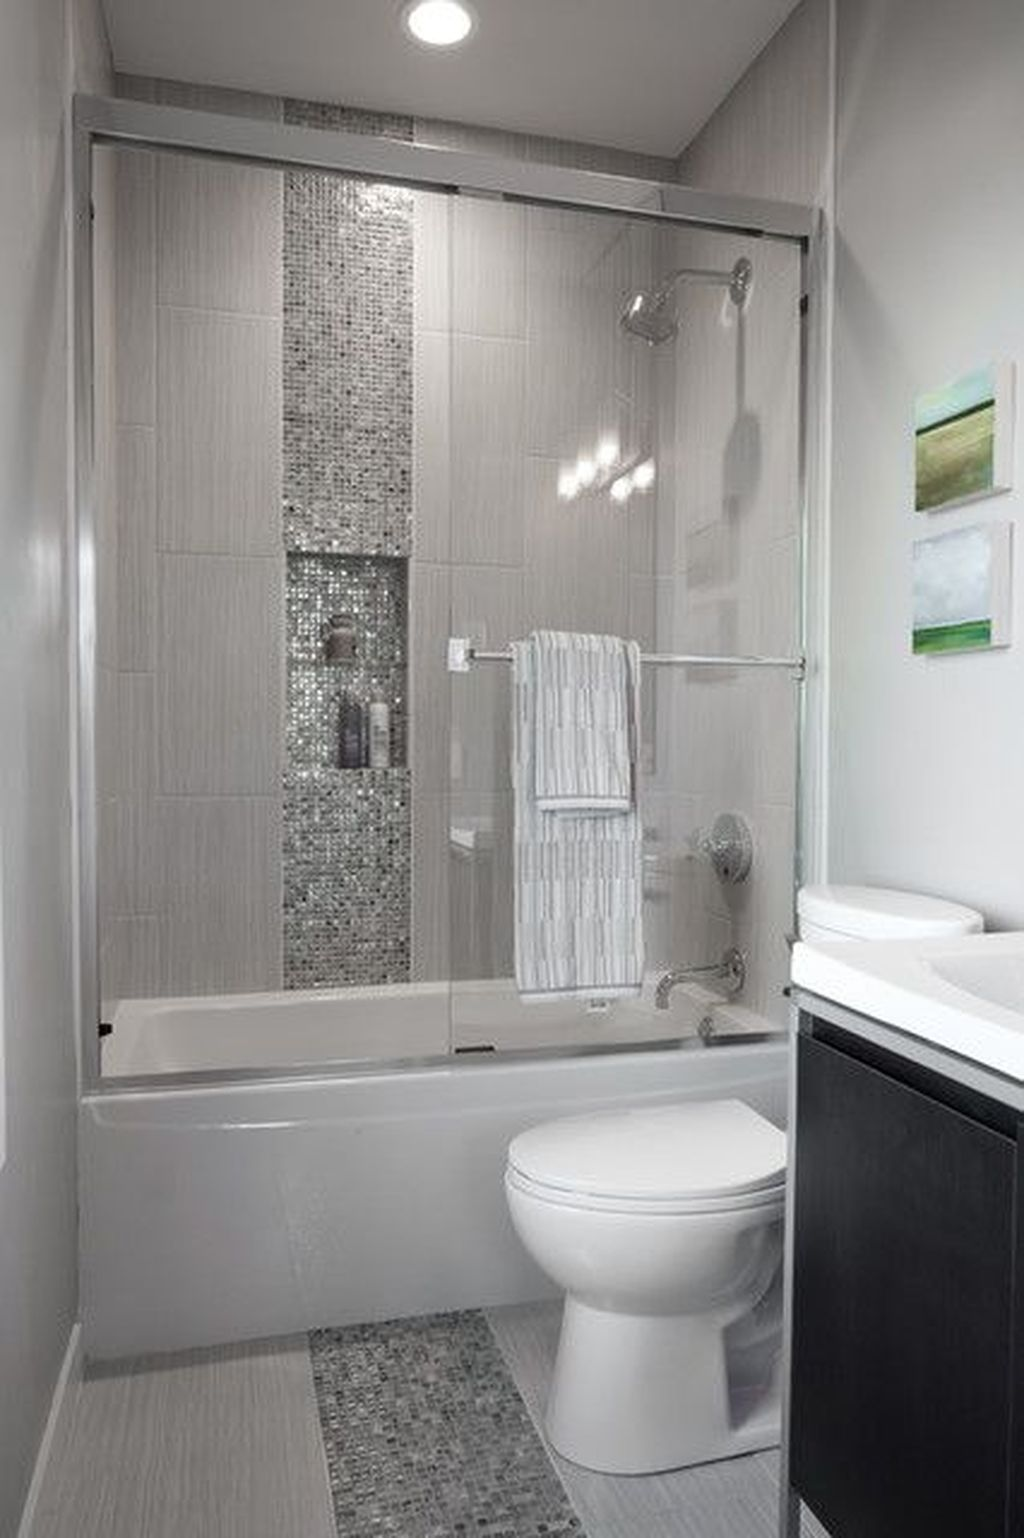 40 The Best Small Bathroom Design Ideas To Make It Look Larger